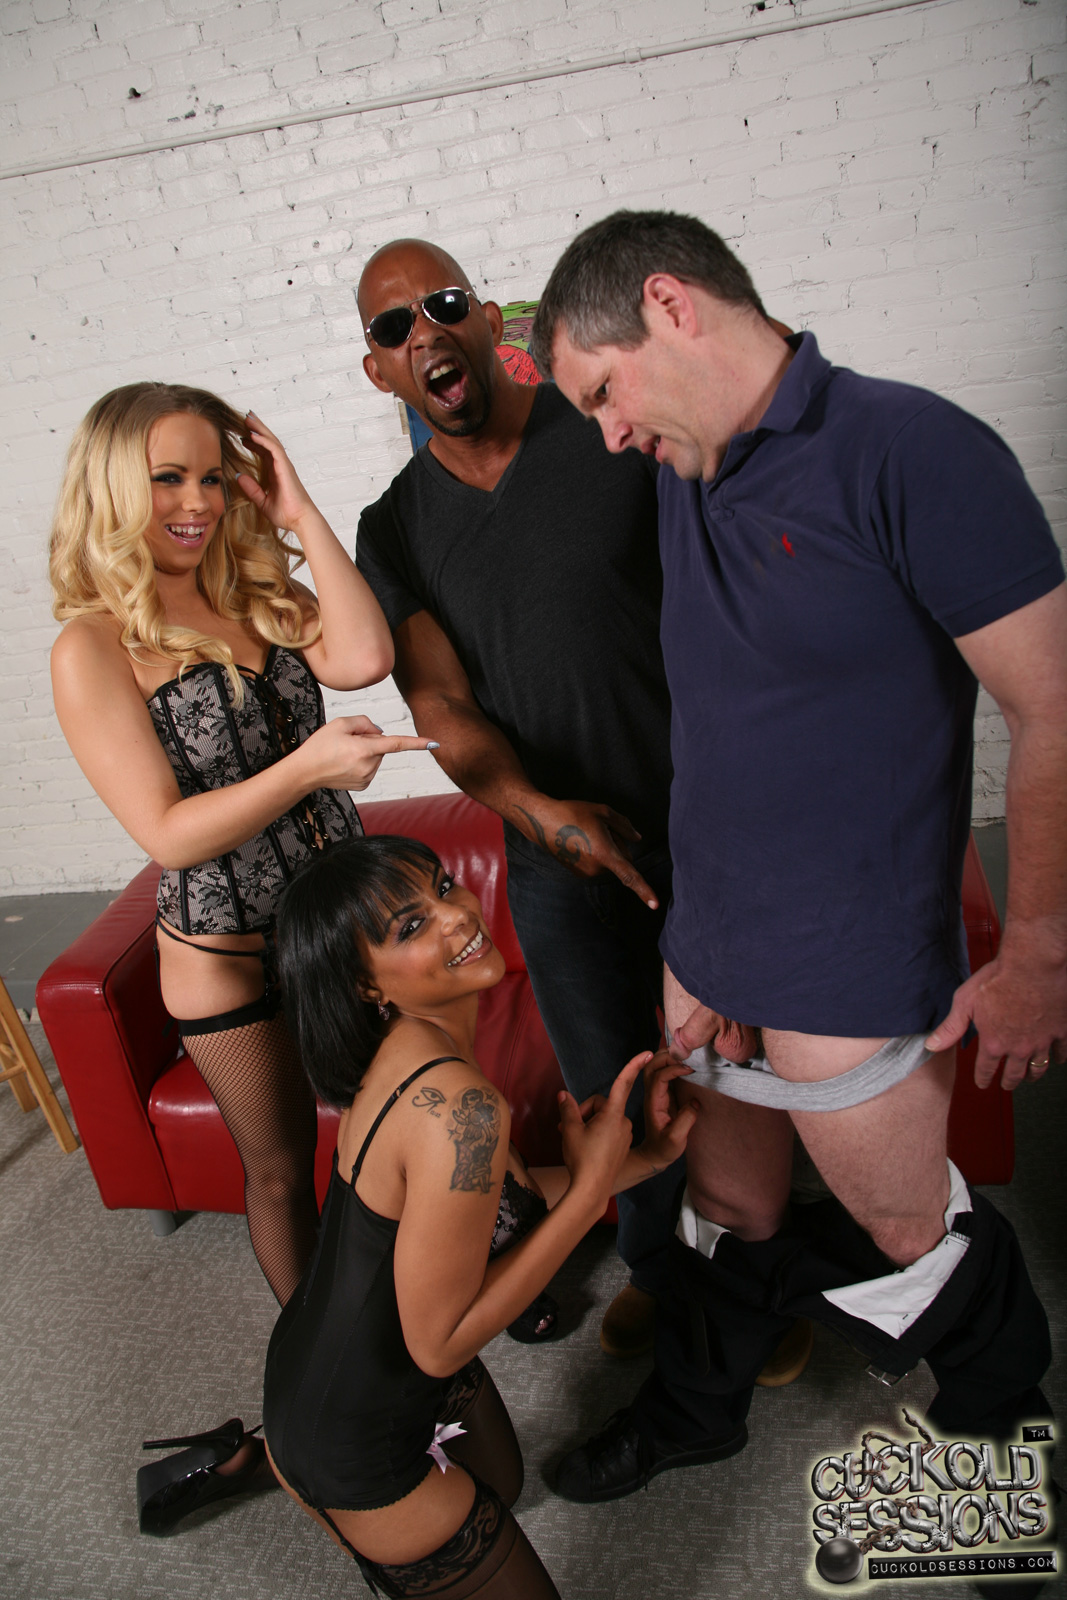 White girl gets well used by jamaican dick - 2 part 1